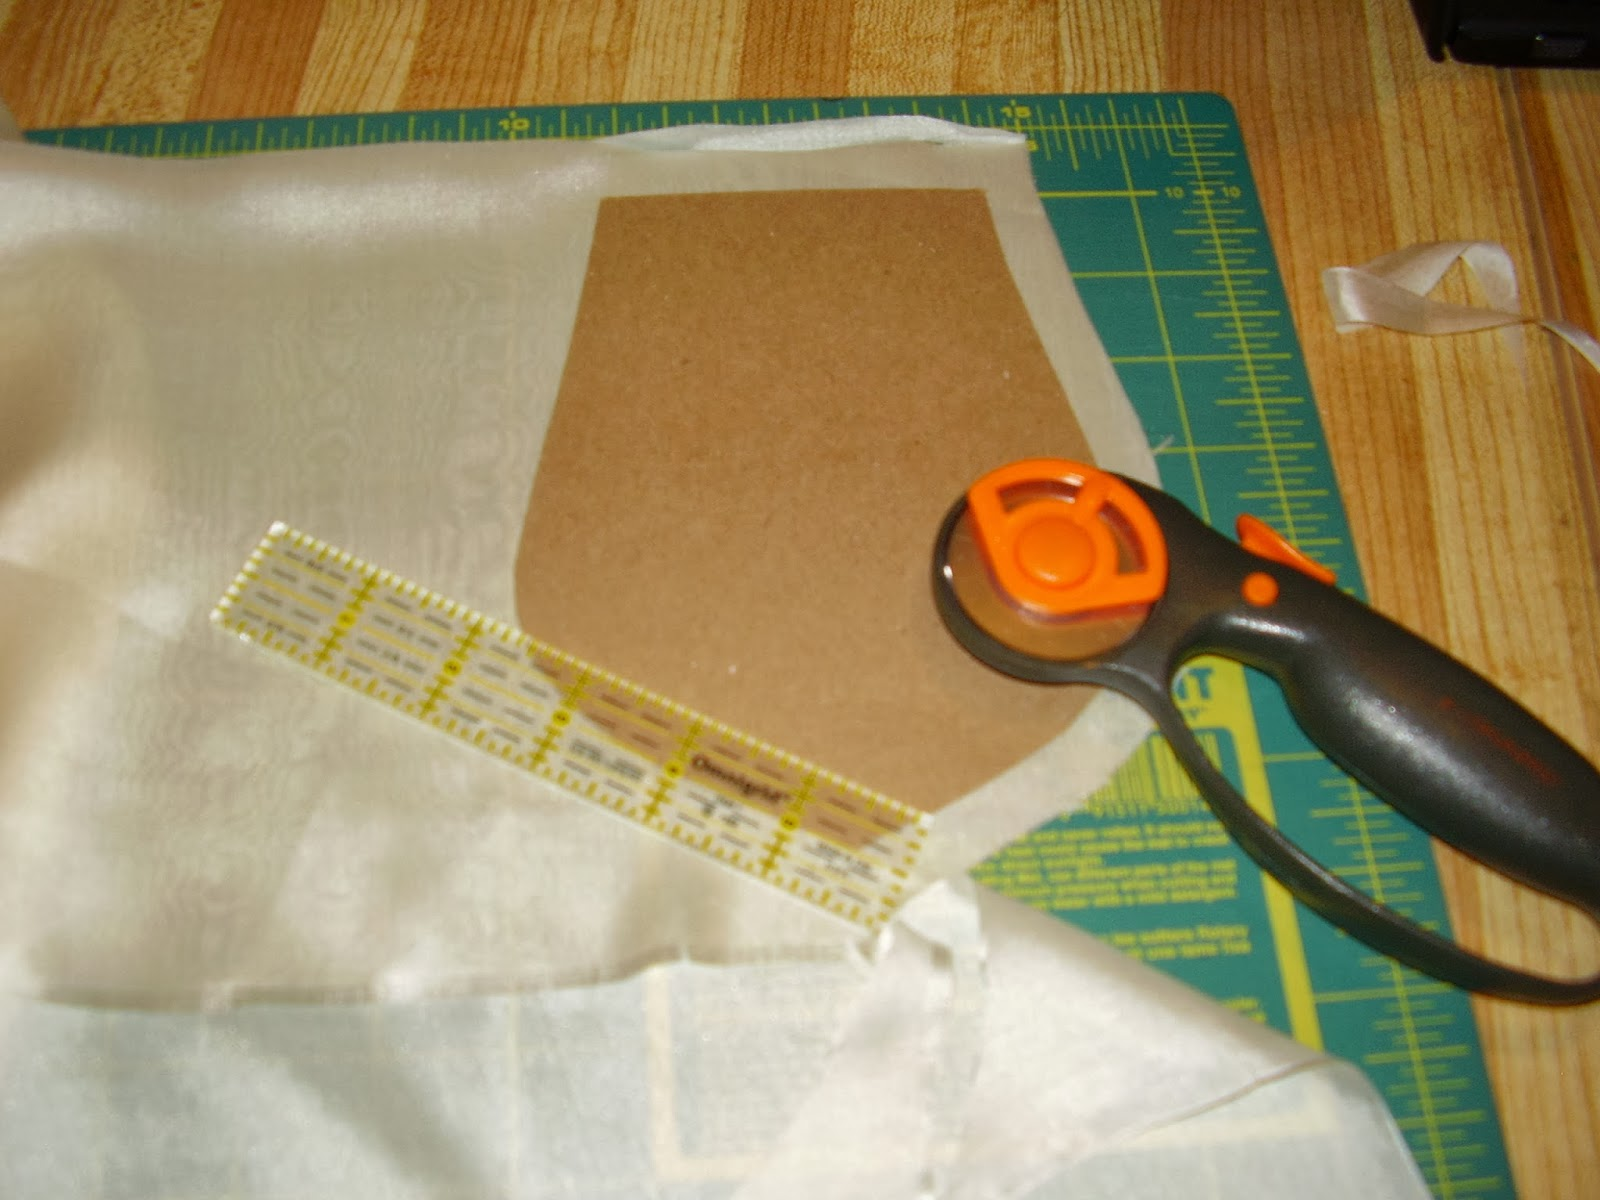 Cutting the silk from a cardboard pattern.